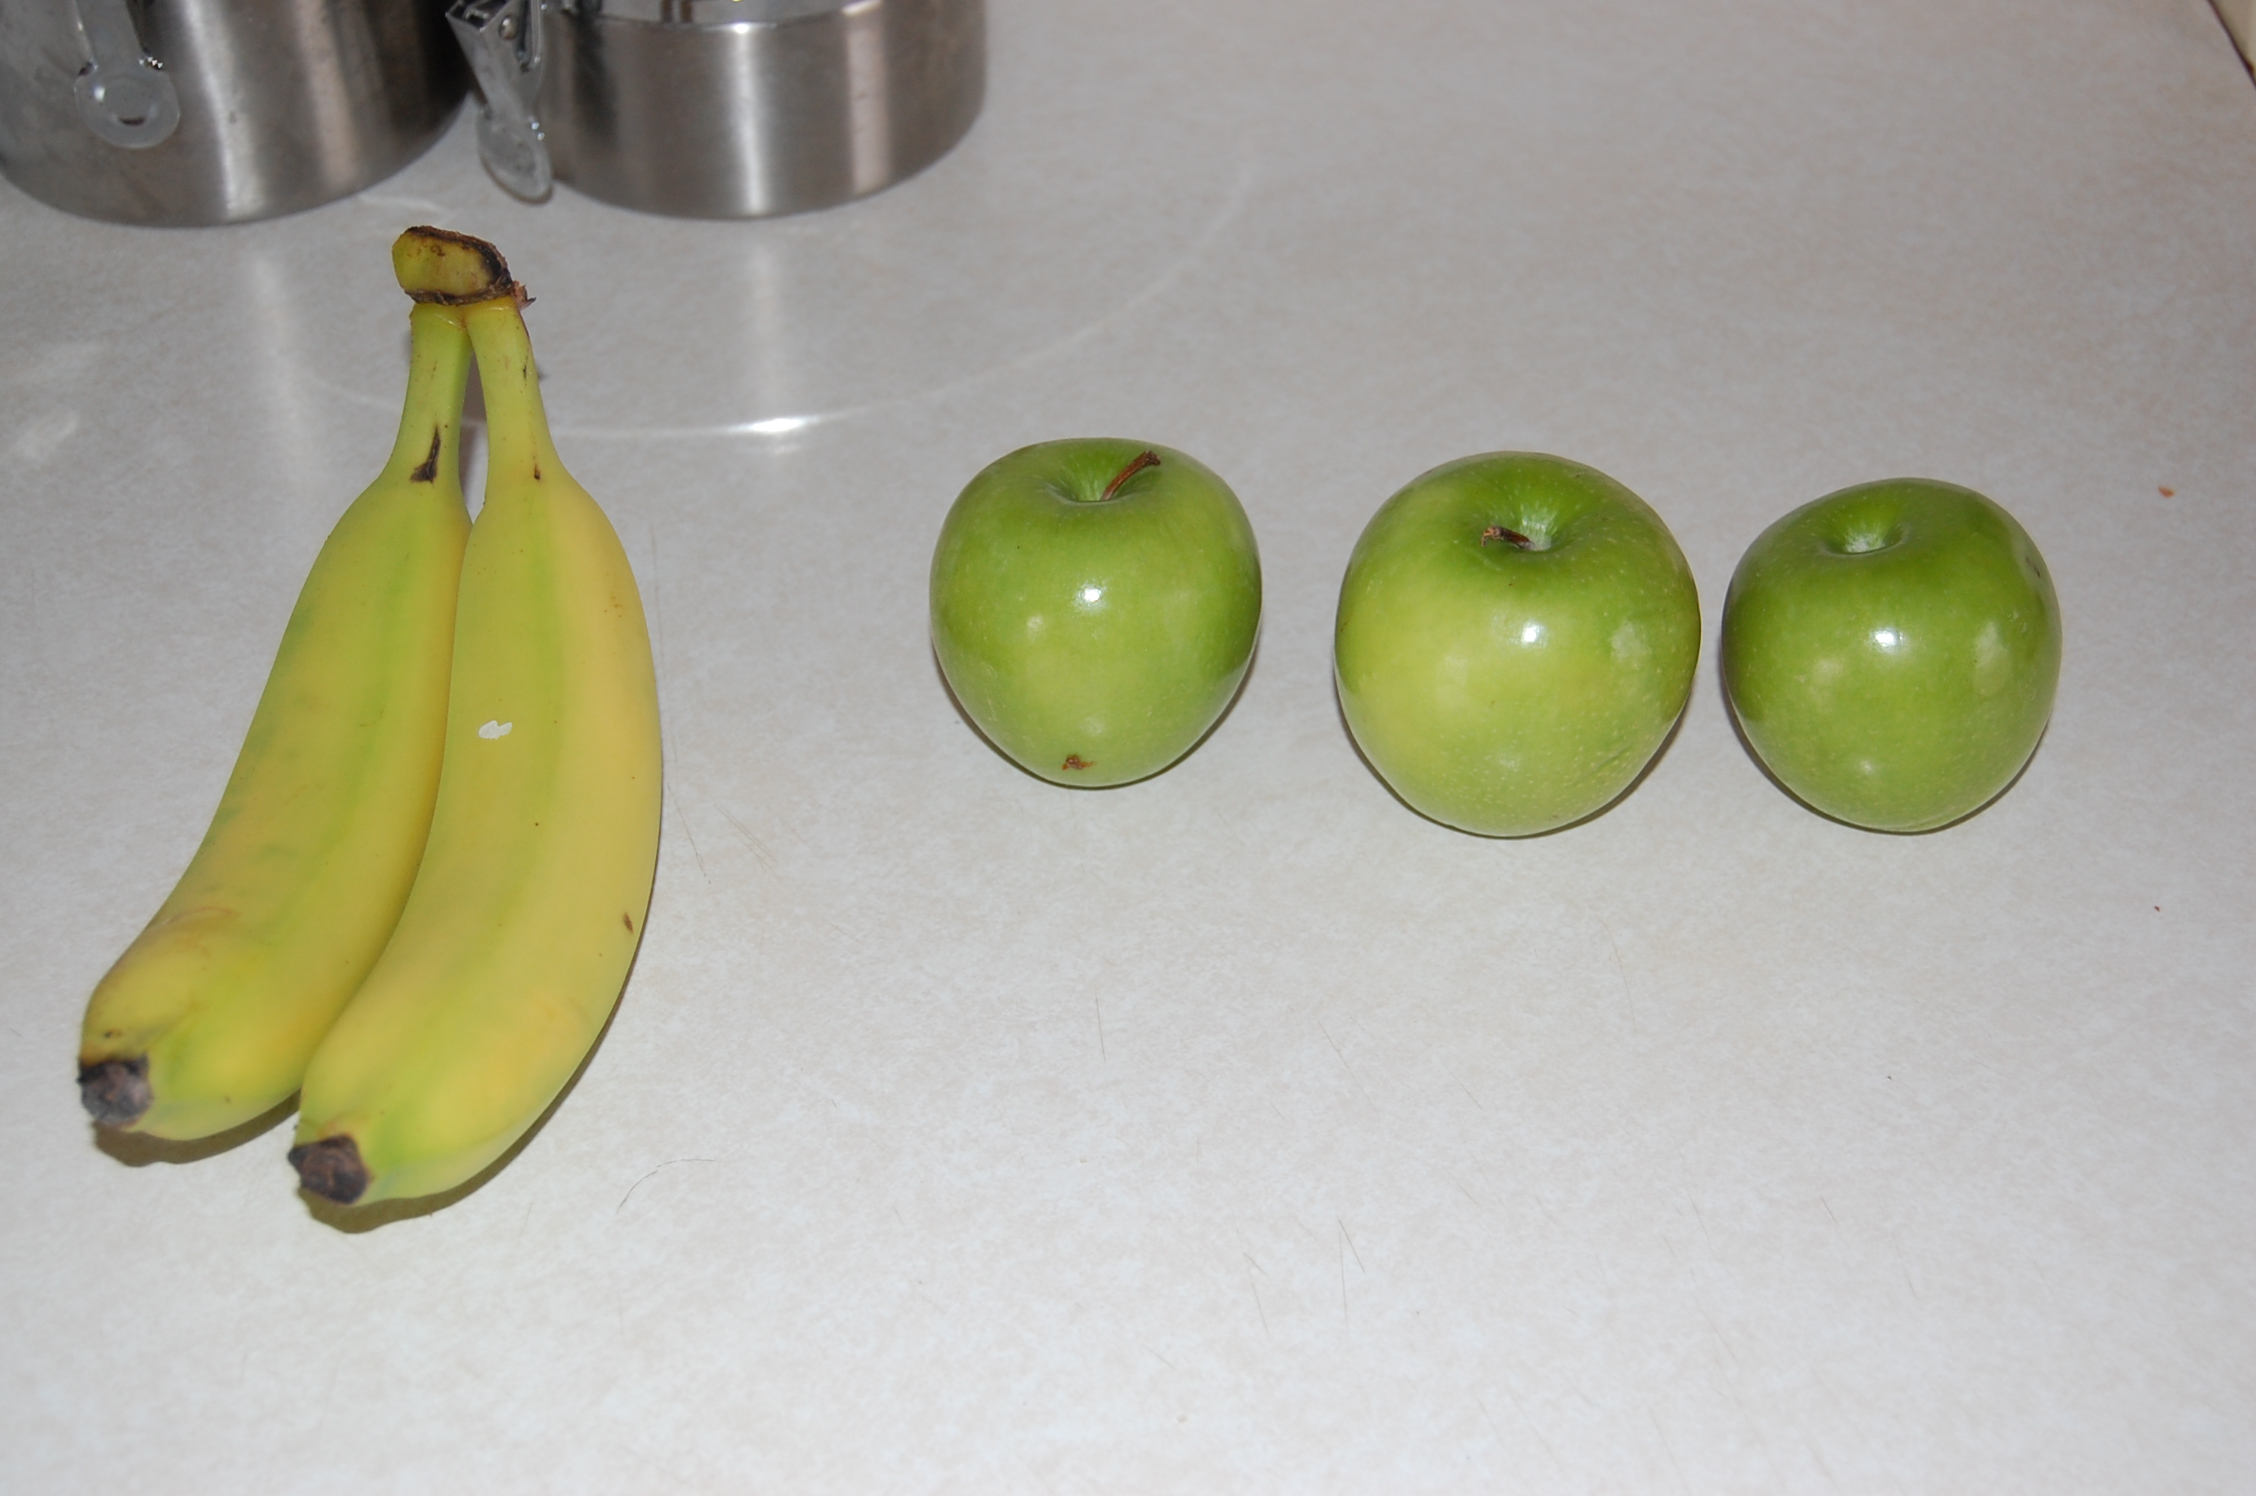 Apples and bananas